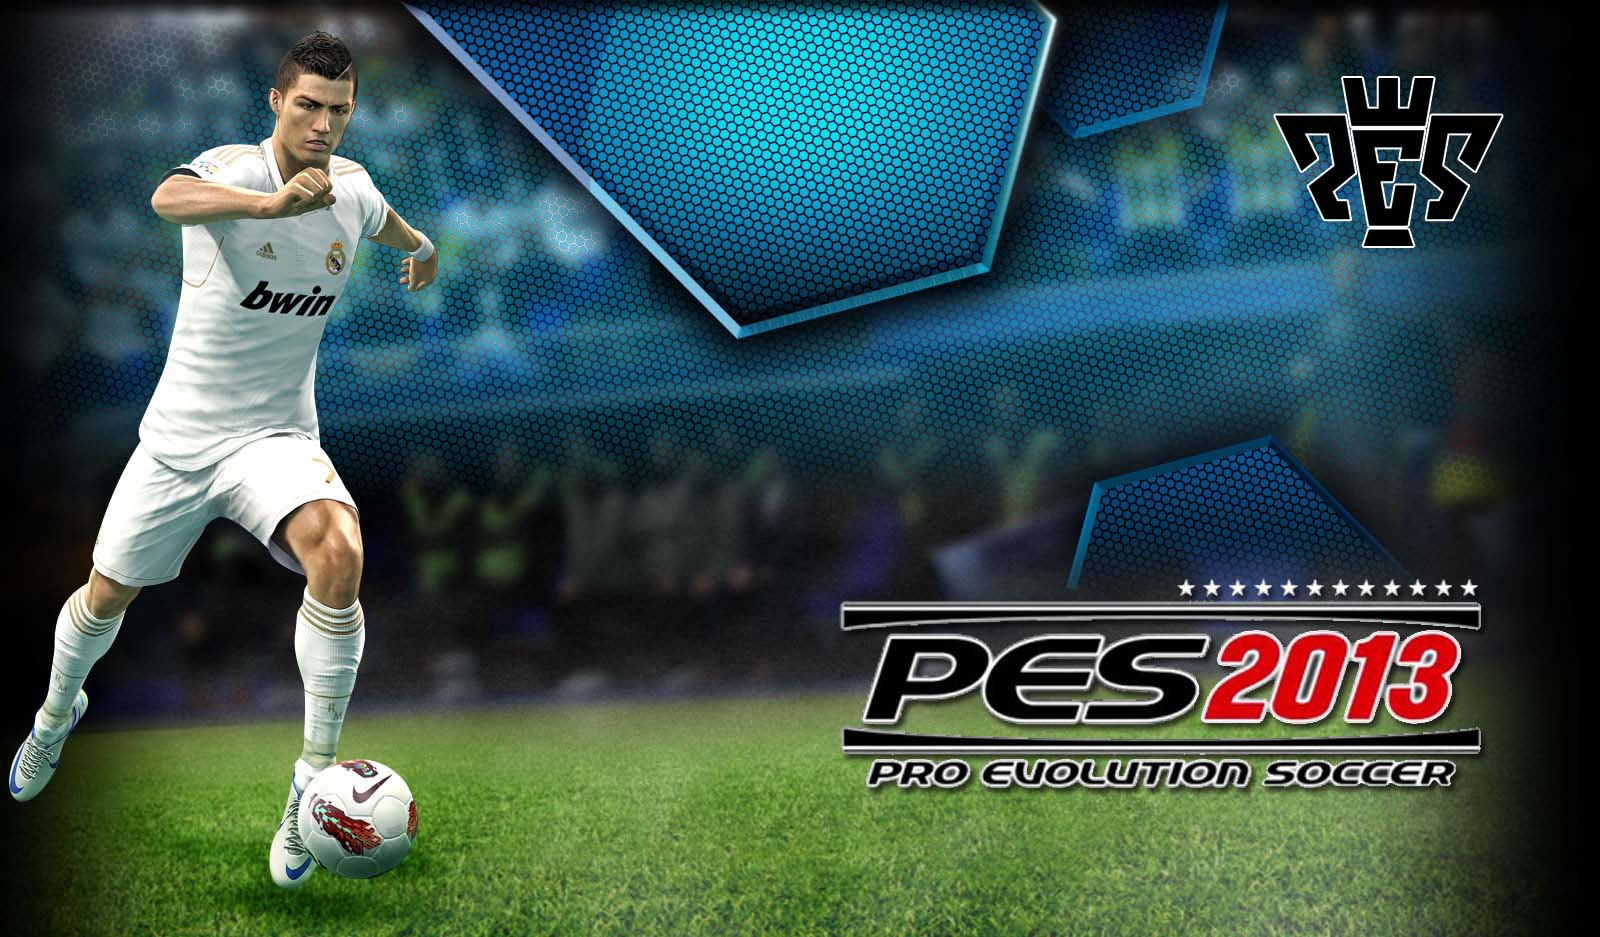 Update PES 2013 patch 2.3 + 2.3.1 FIX